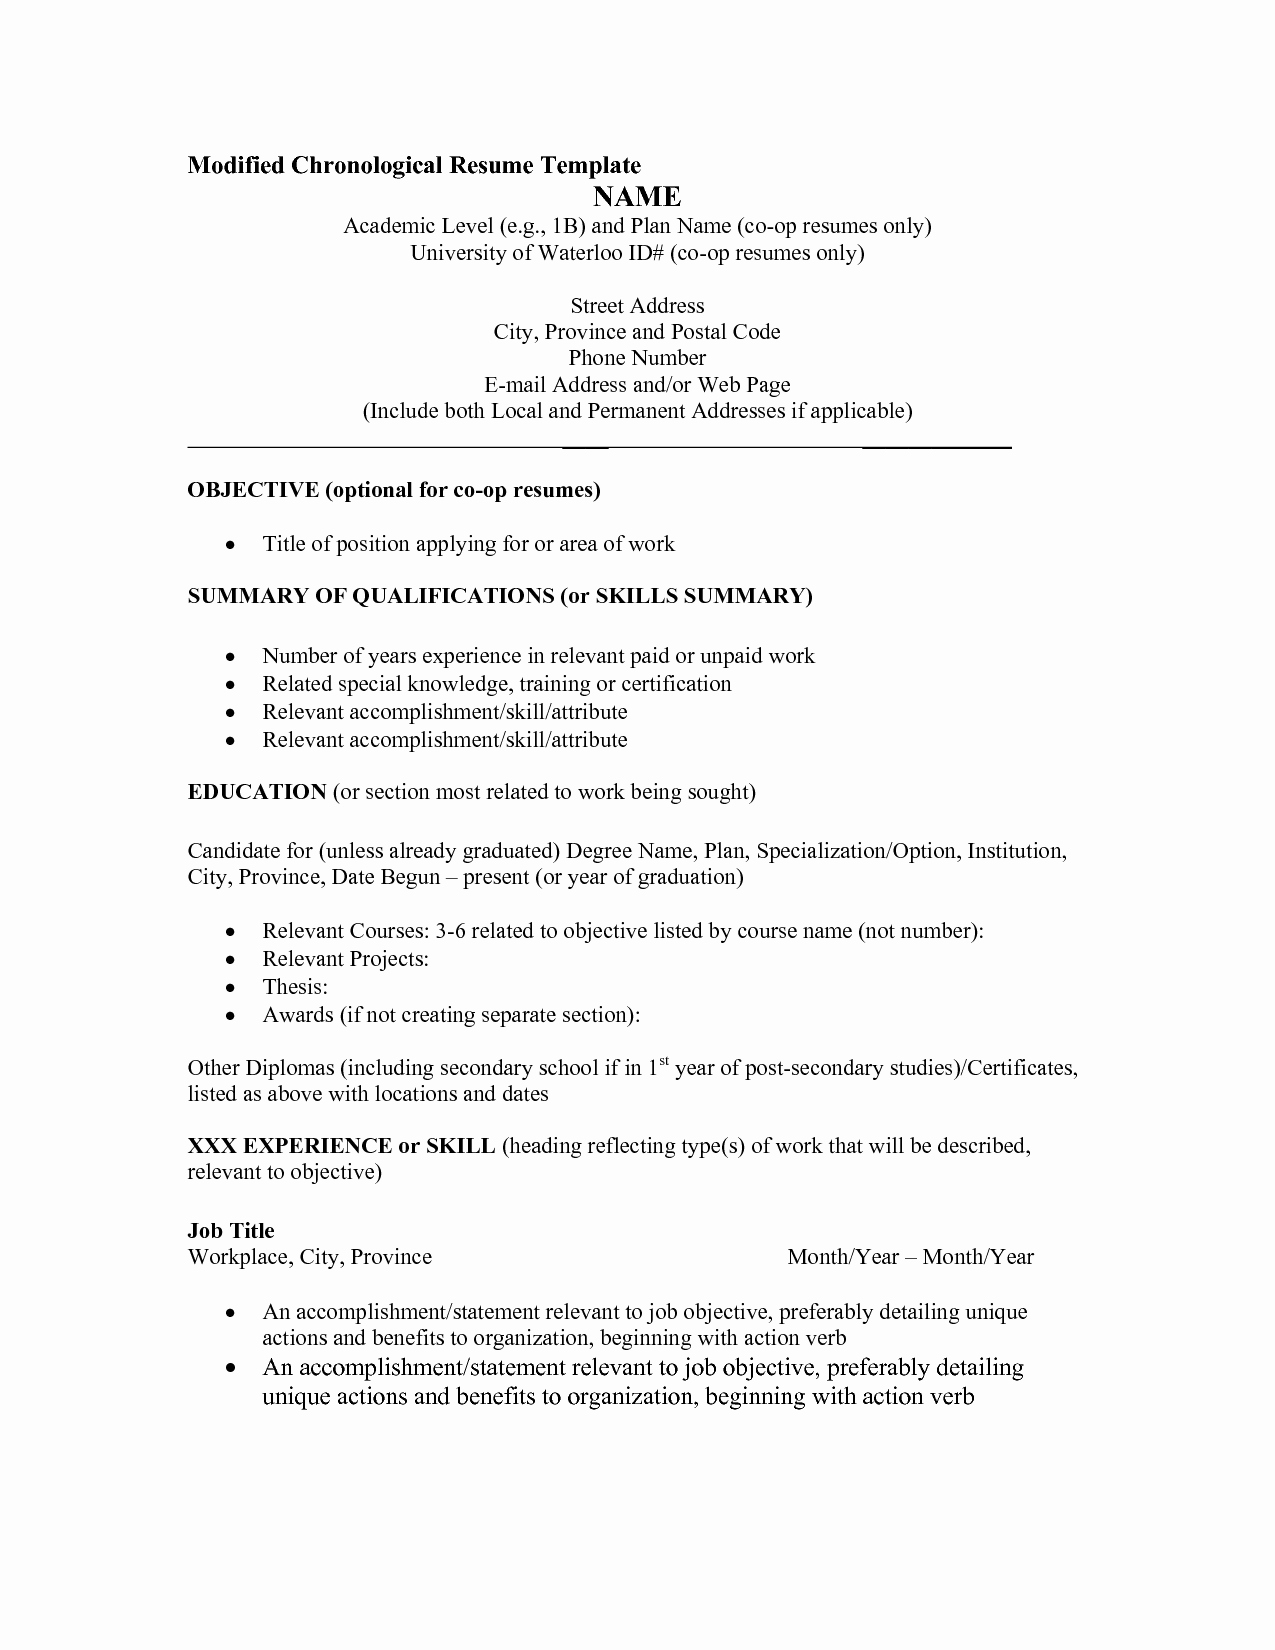 What is A Job Title A Resume Resume Ideas